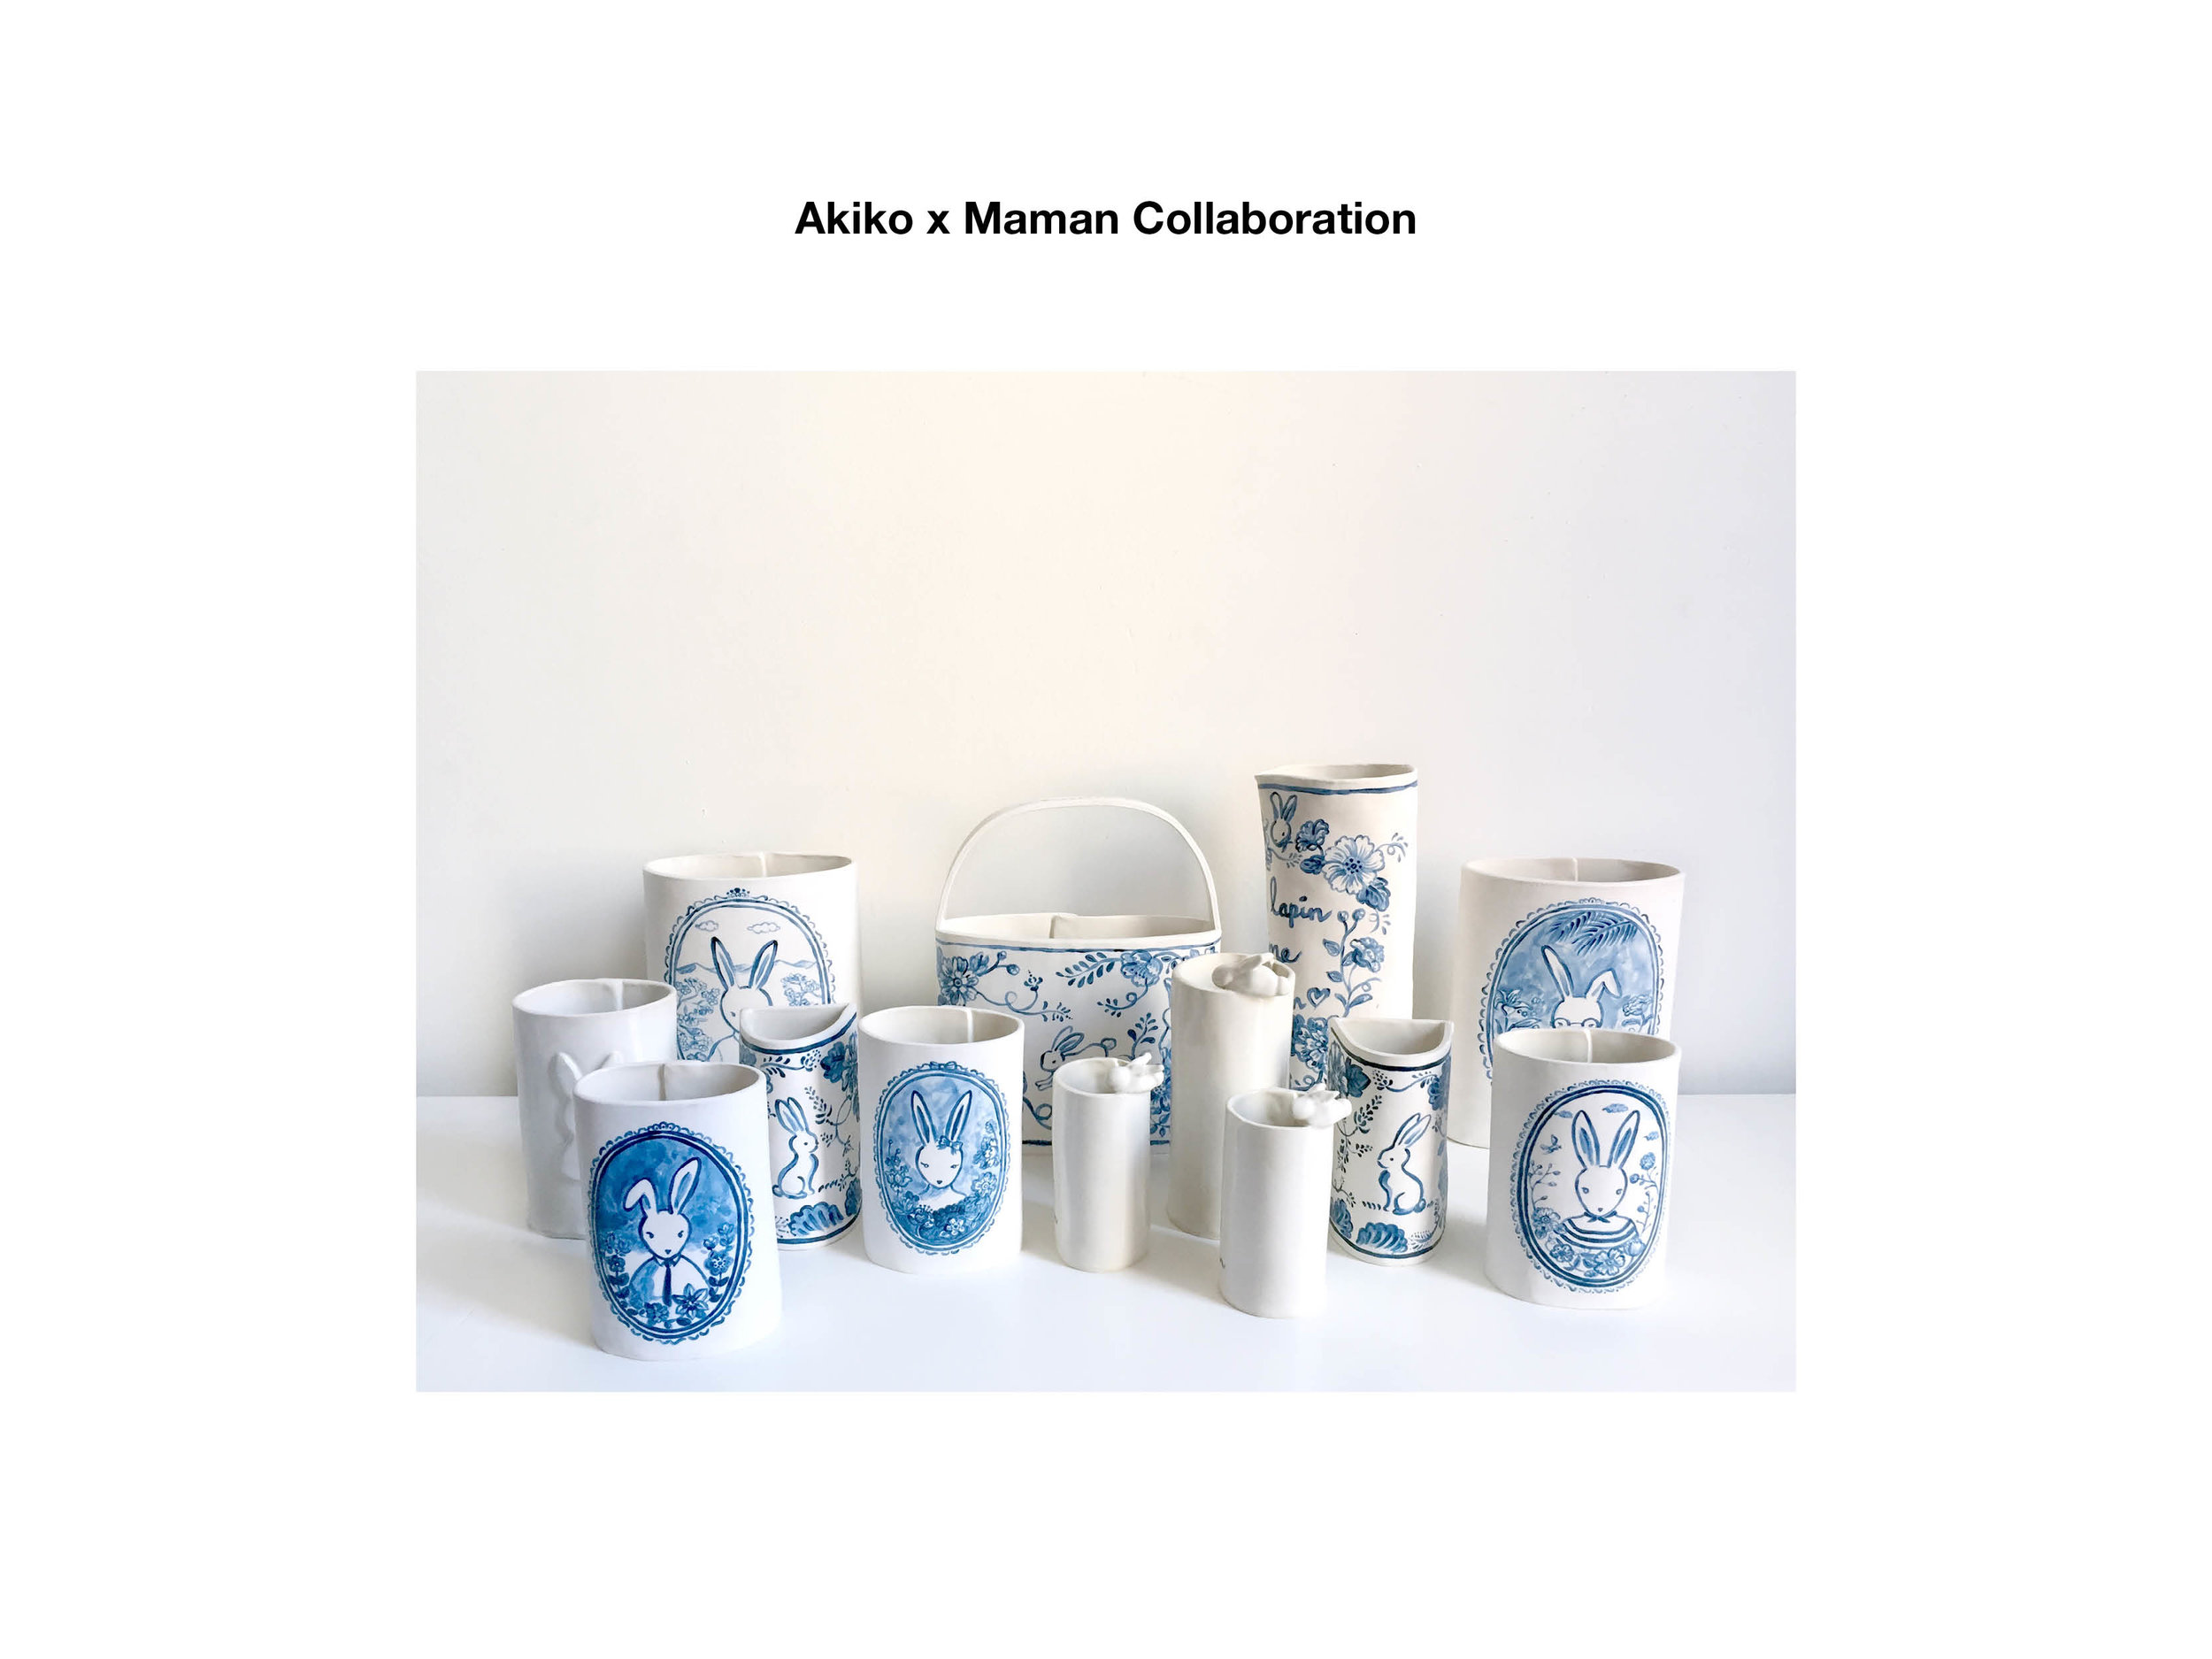 Akiko x Maman Collaboration is finally here! Stop by Maman Tribeca NYC and shop these limited edition ceramic pieces I created exclusively for Maman at Marché Maman while you enjoy coffee, great pastry and lunch. Made to order available through my shop site.